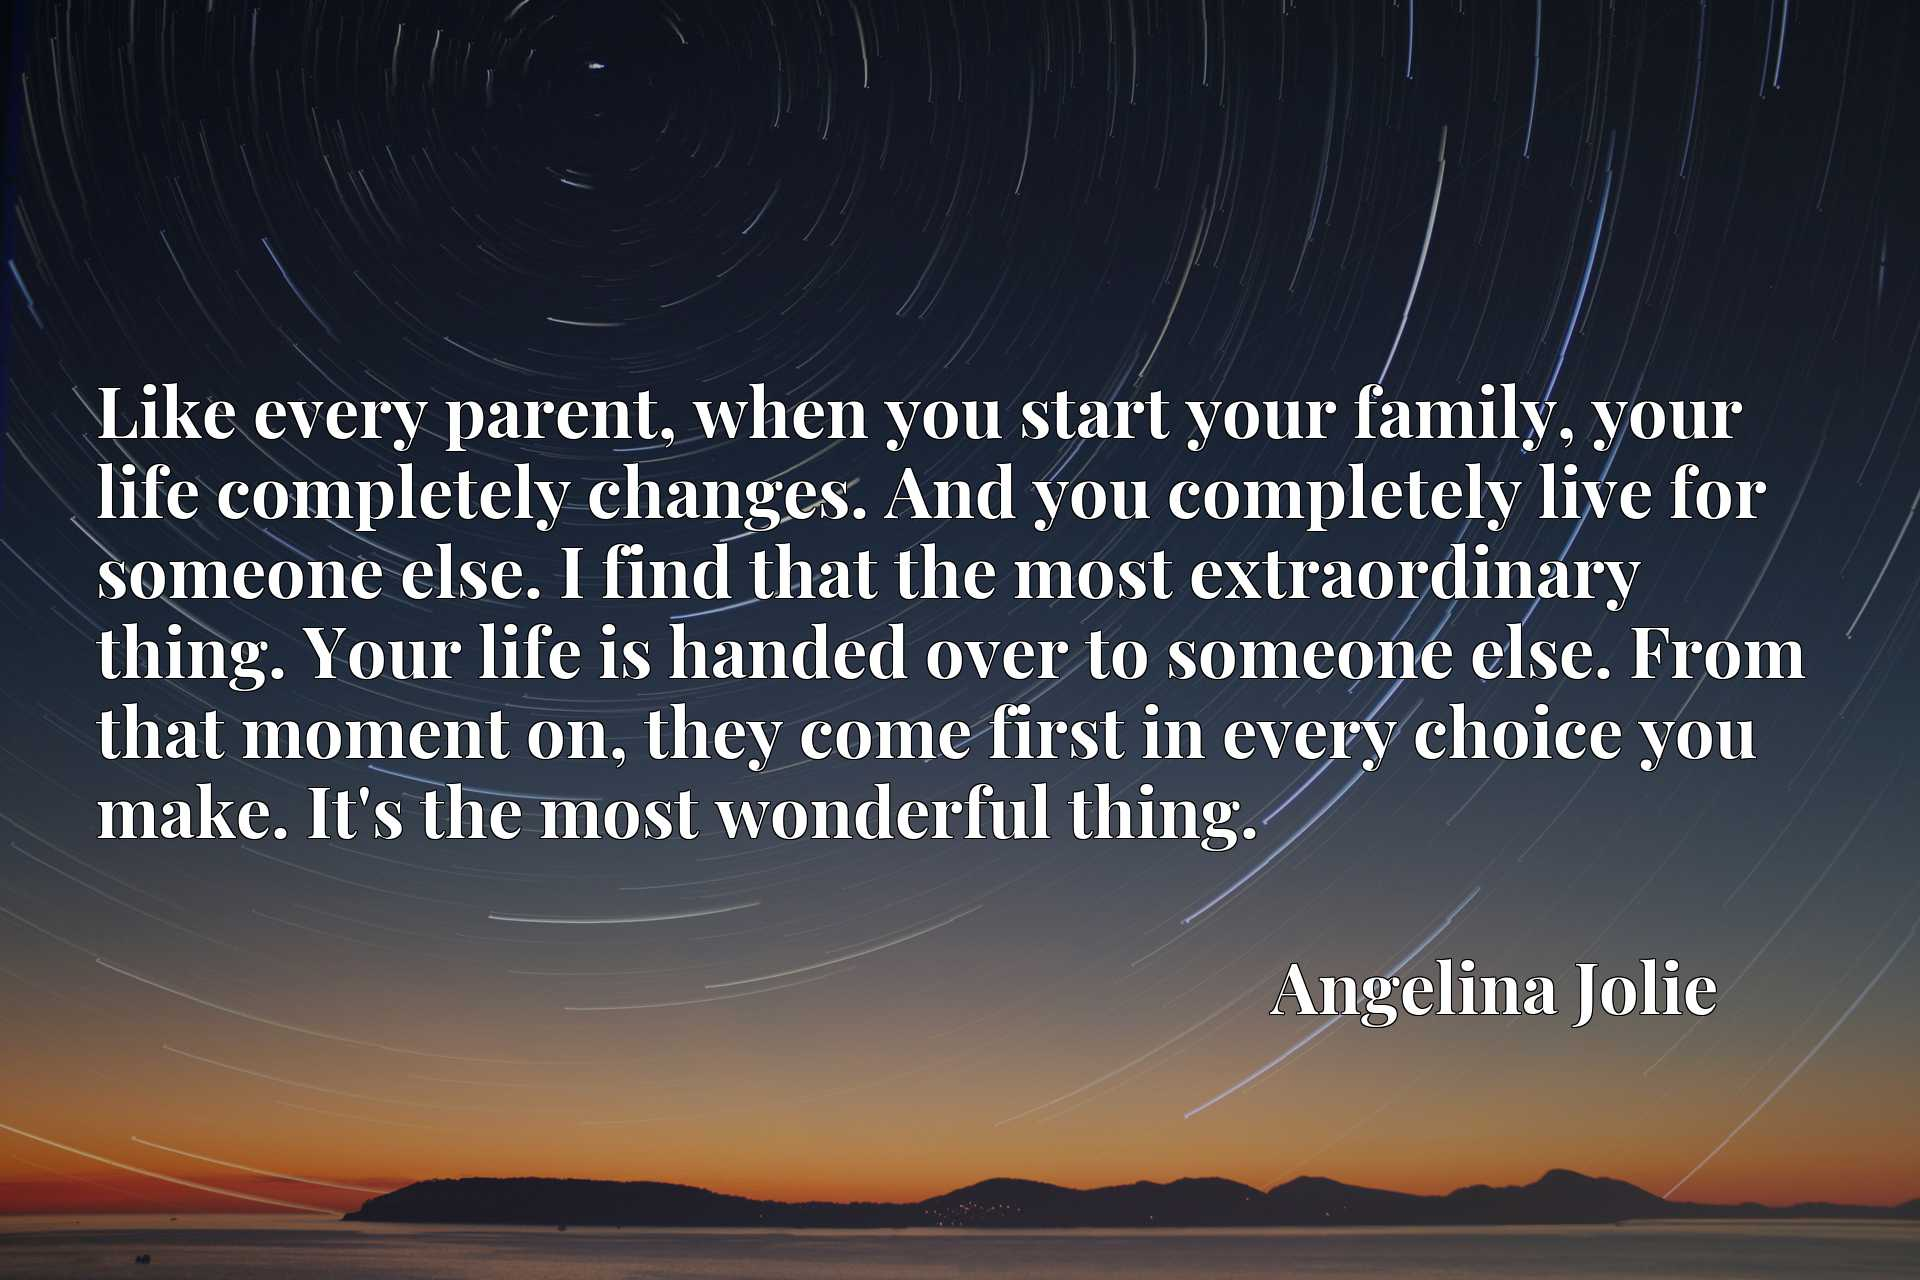 Like every parent, when you start your family, your life completely changes. And you completely live for someone else. I find that the most extraordinary thing. Your life is handed over to someone else. From that moment on, they come first in every choice you make. It's the most wonderful thing.